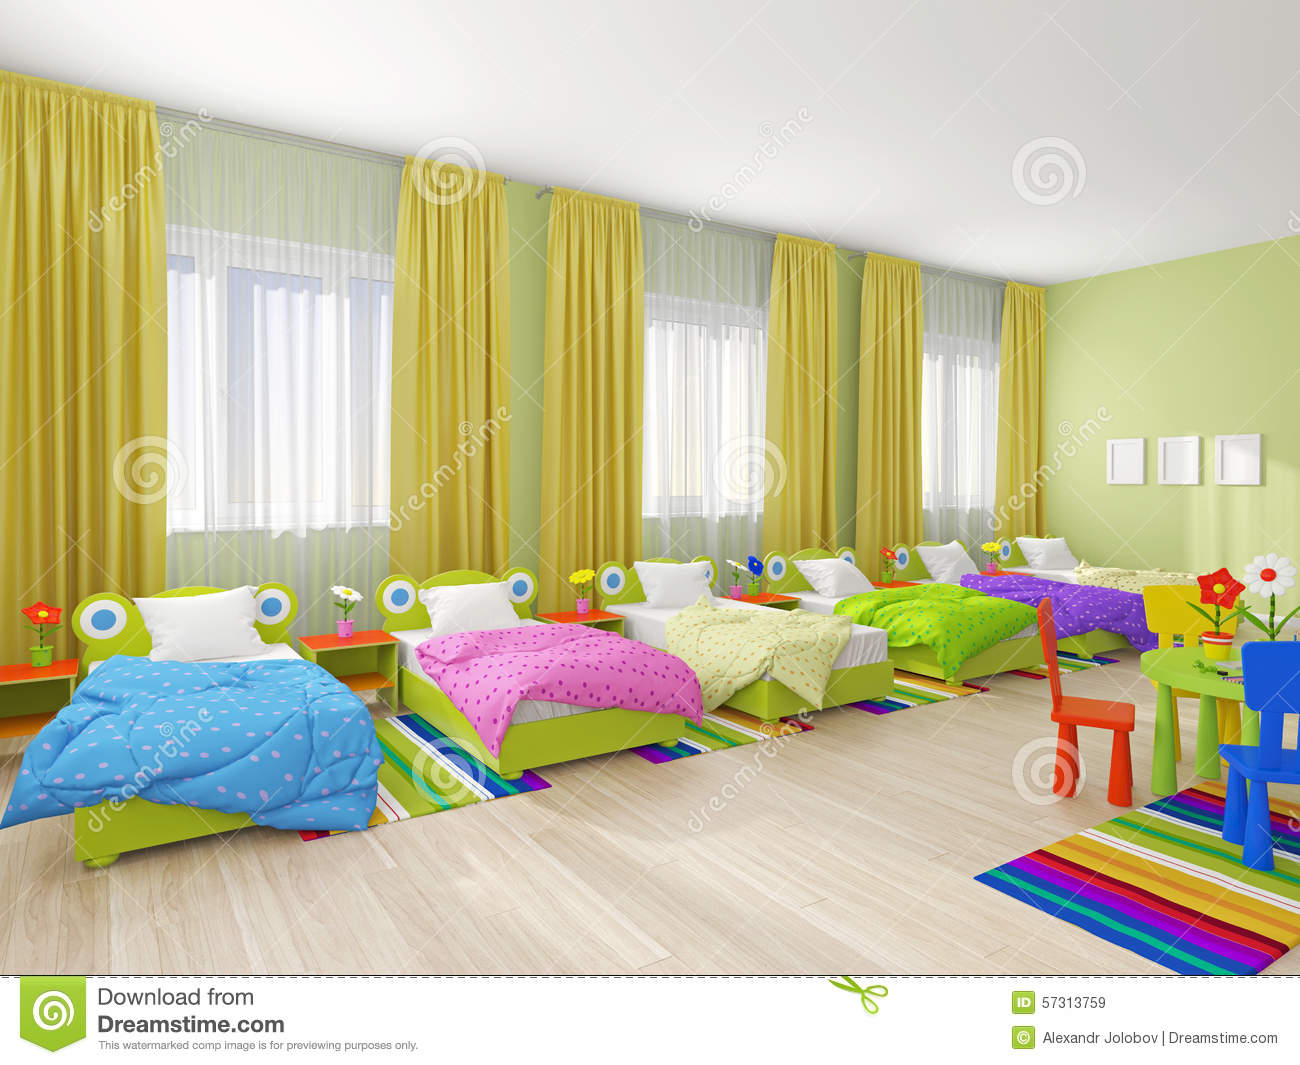 Bedroom Interior In Kindergarten  On The Floor Are The Bed  Cots Are